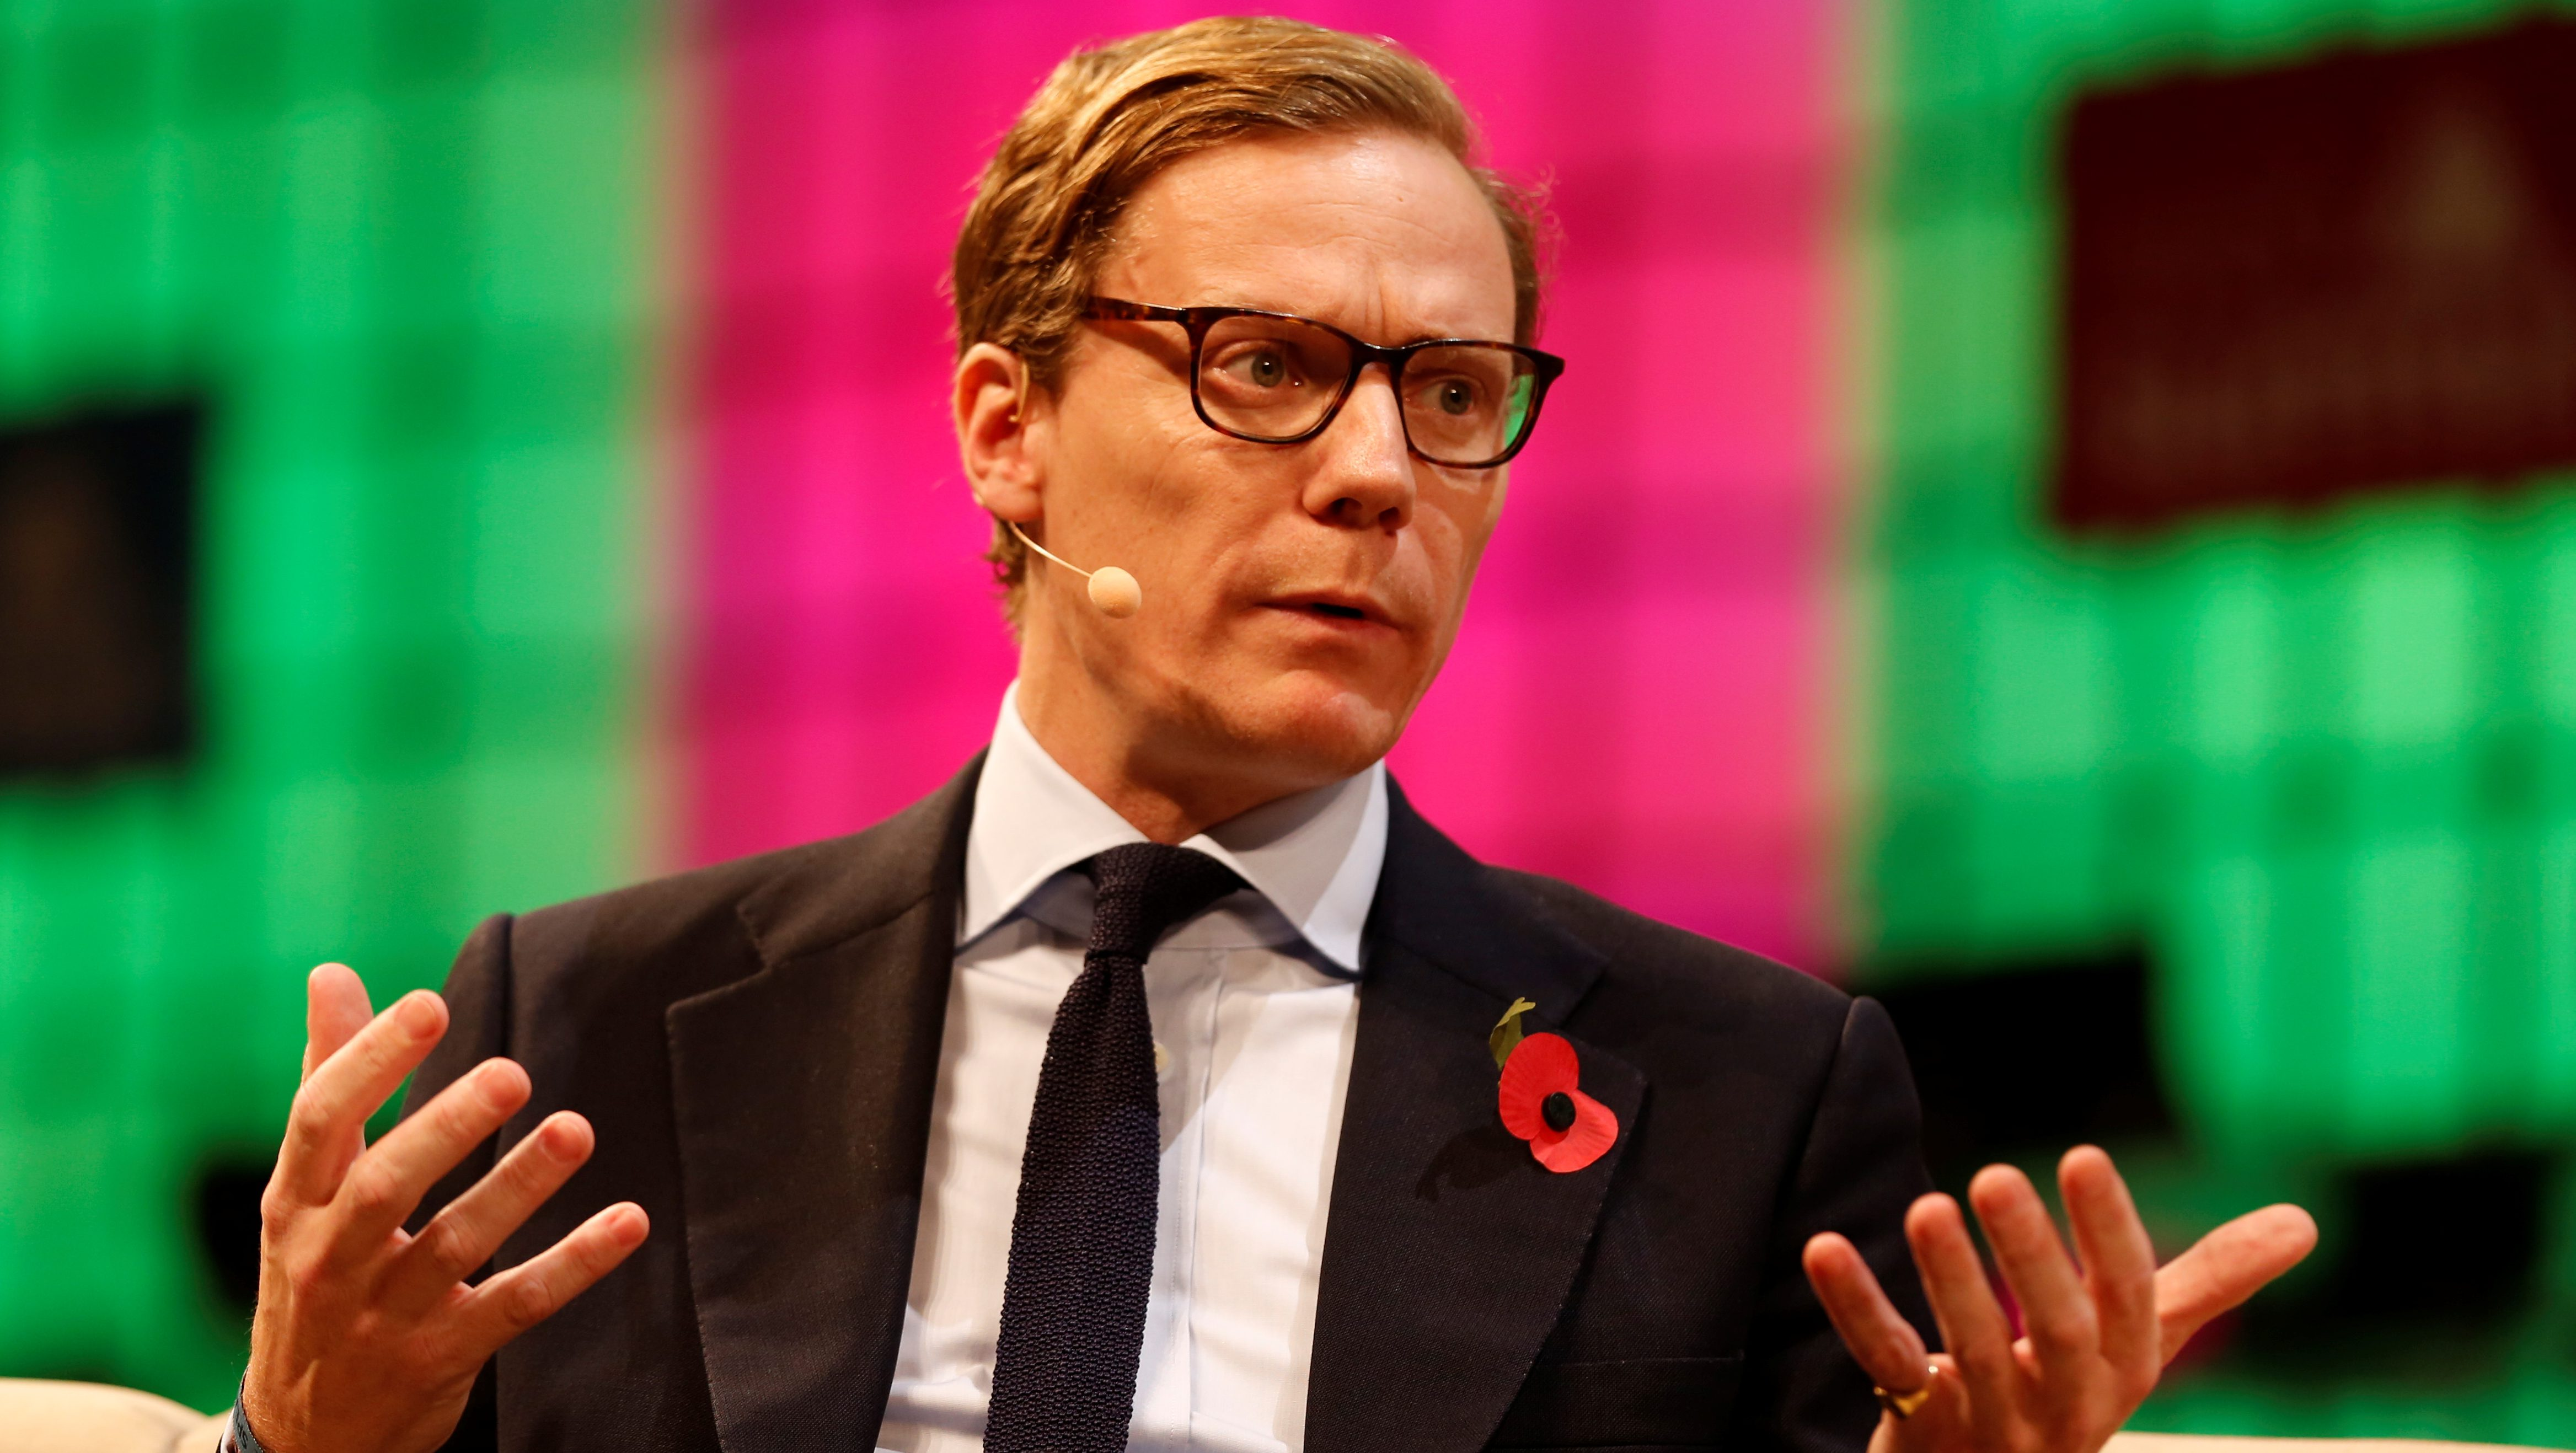 CEO of Cambridge Analytica, Alexander Nix, speaks during the Web Summit, Europe's biggest tech conference, in Lisbon, Portugal, November 9, 2017. REUTERS/Pedro Nunes - RC1C55D2F2F0